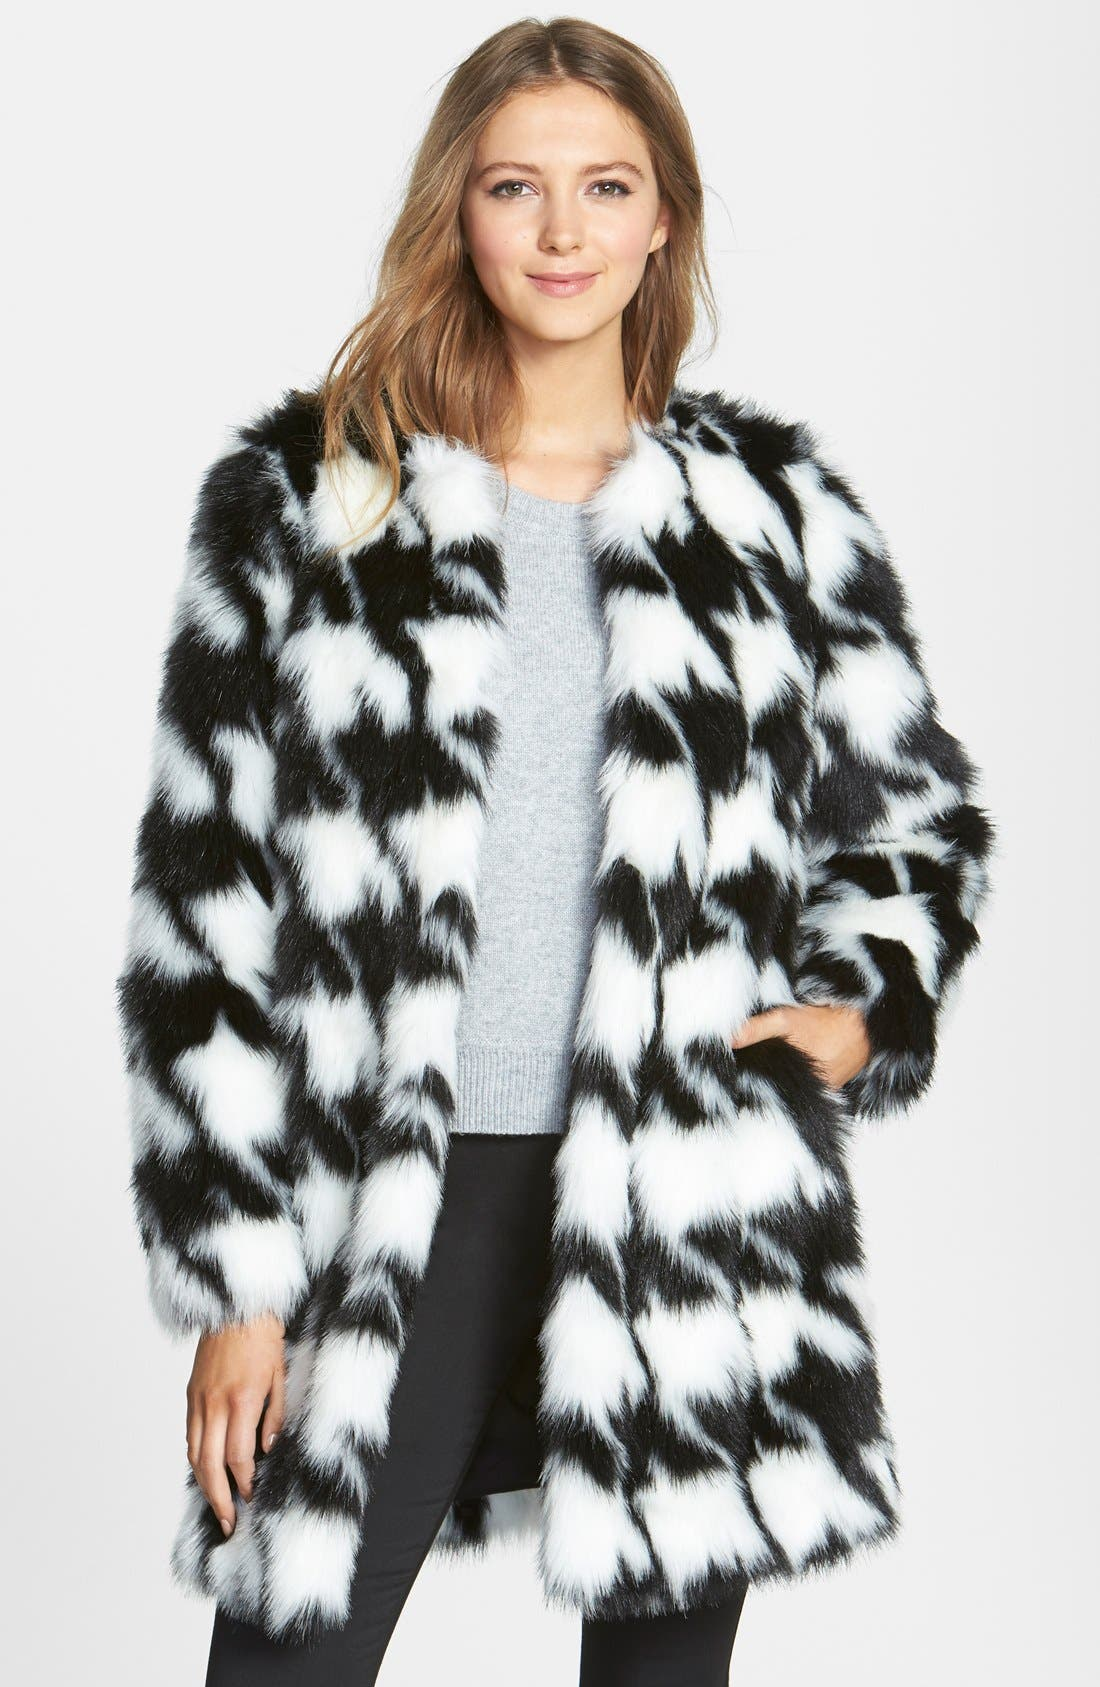 Houndstooth Faux Fur Coat,                             Main thumbnail 1, color,                             902